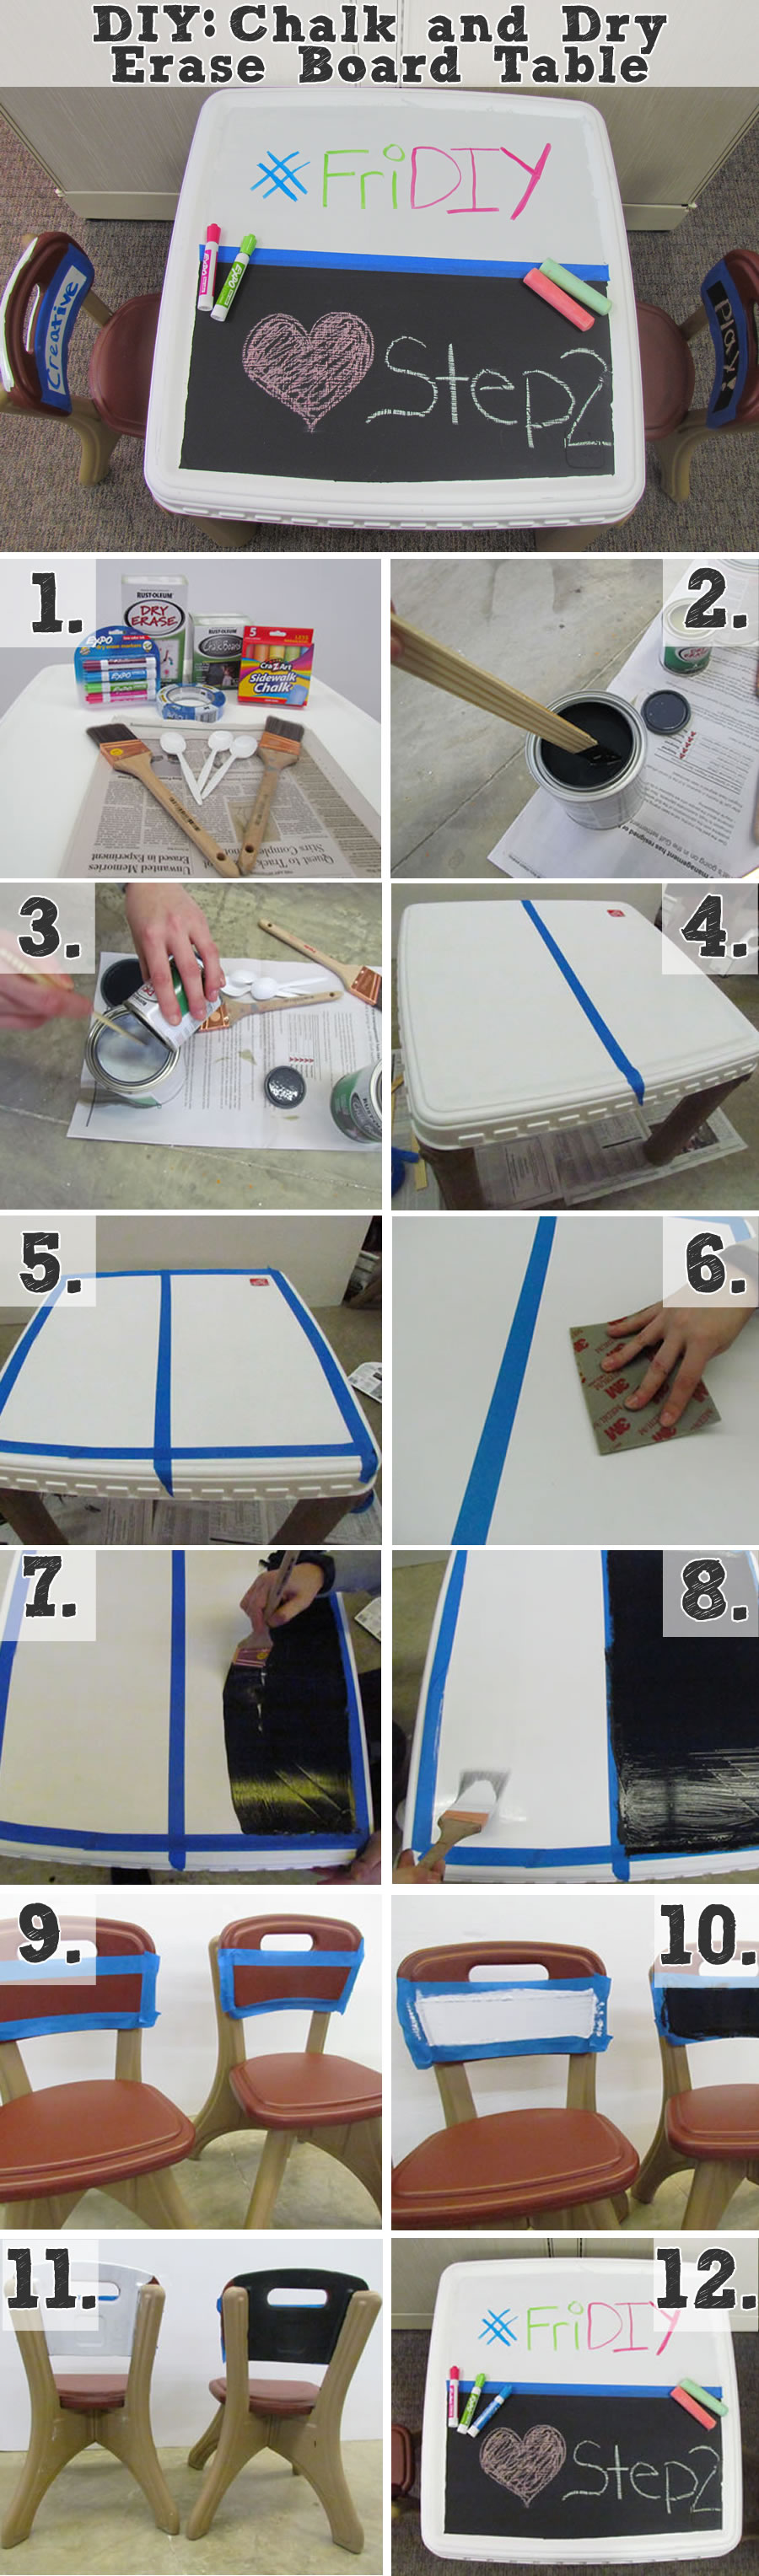 kid's chalk and dry erase board table